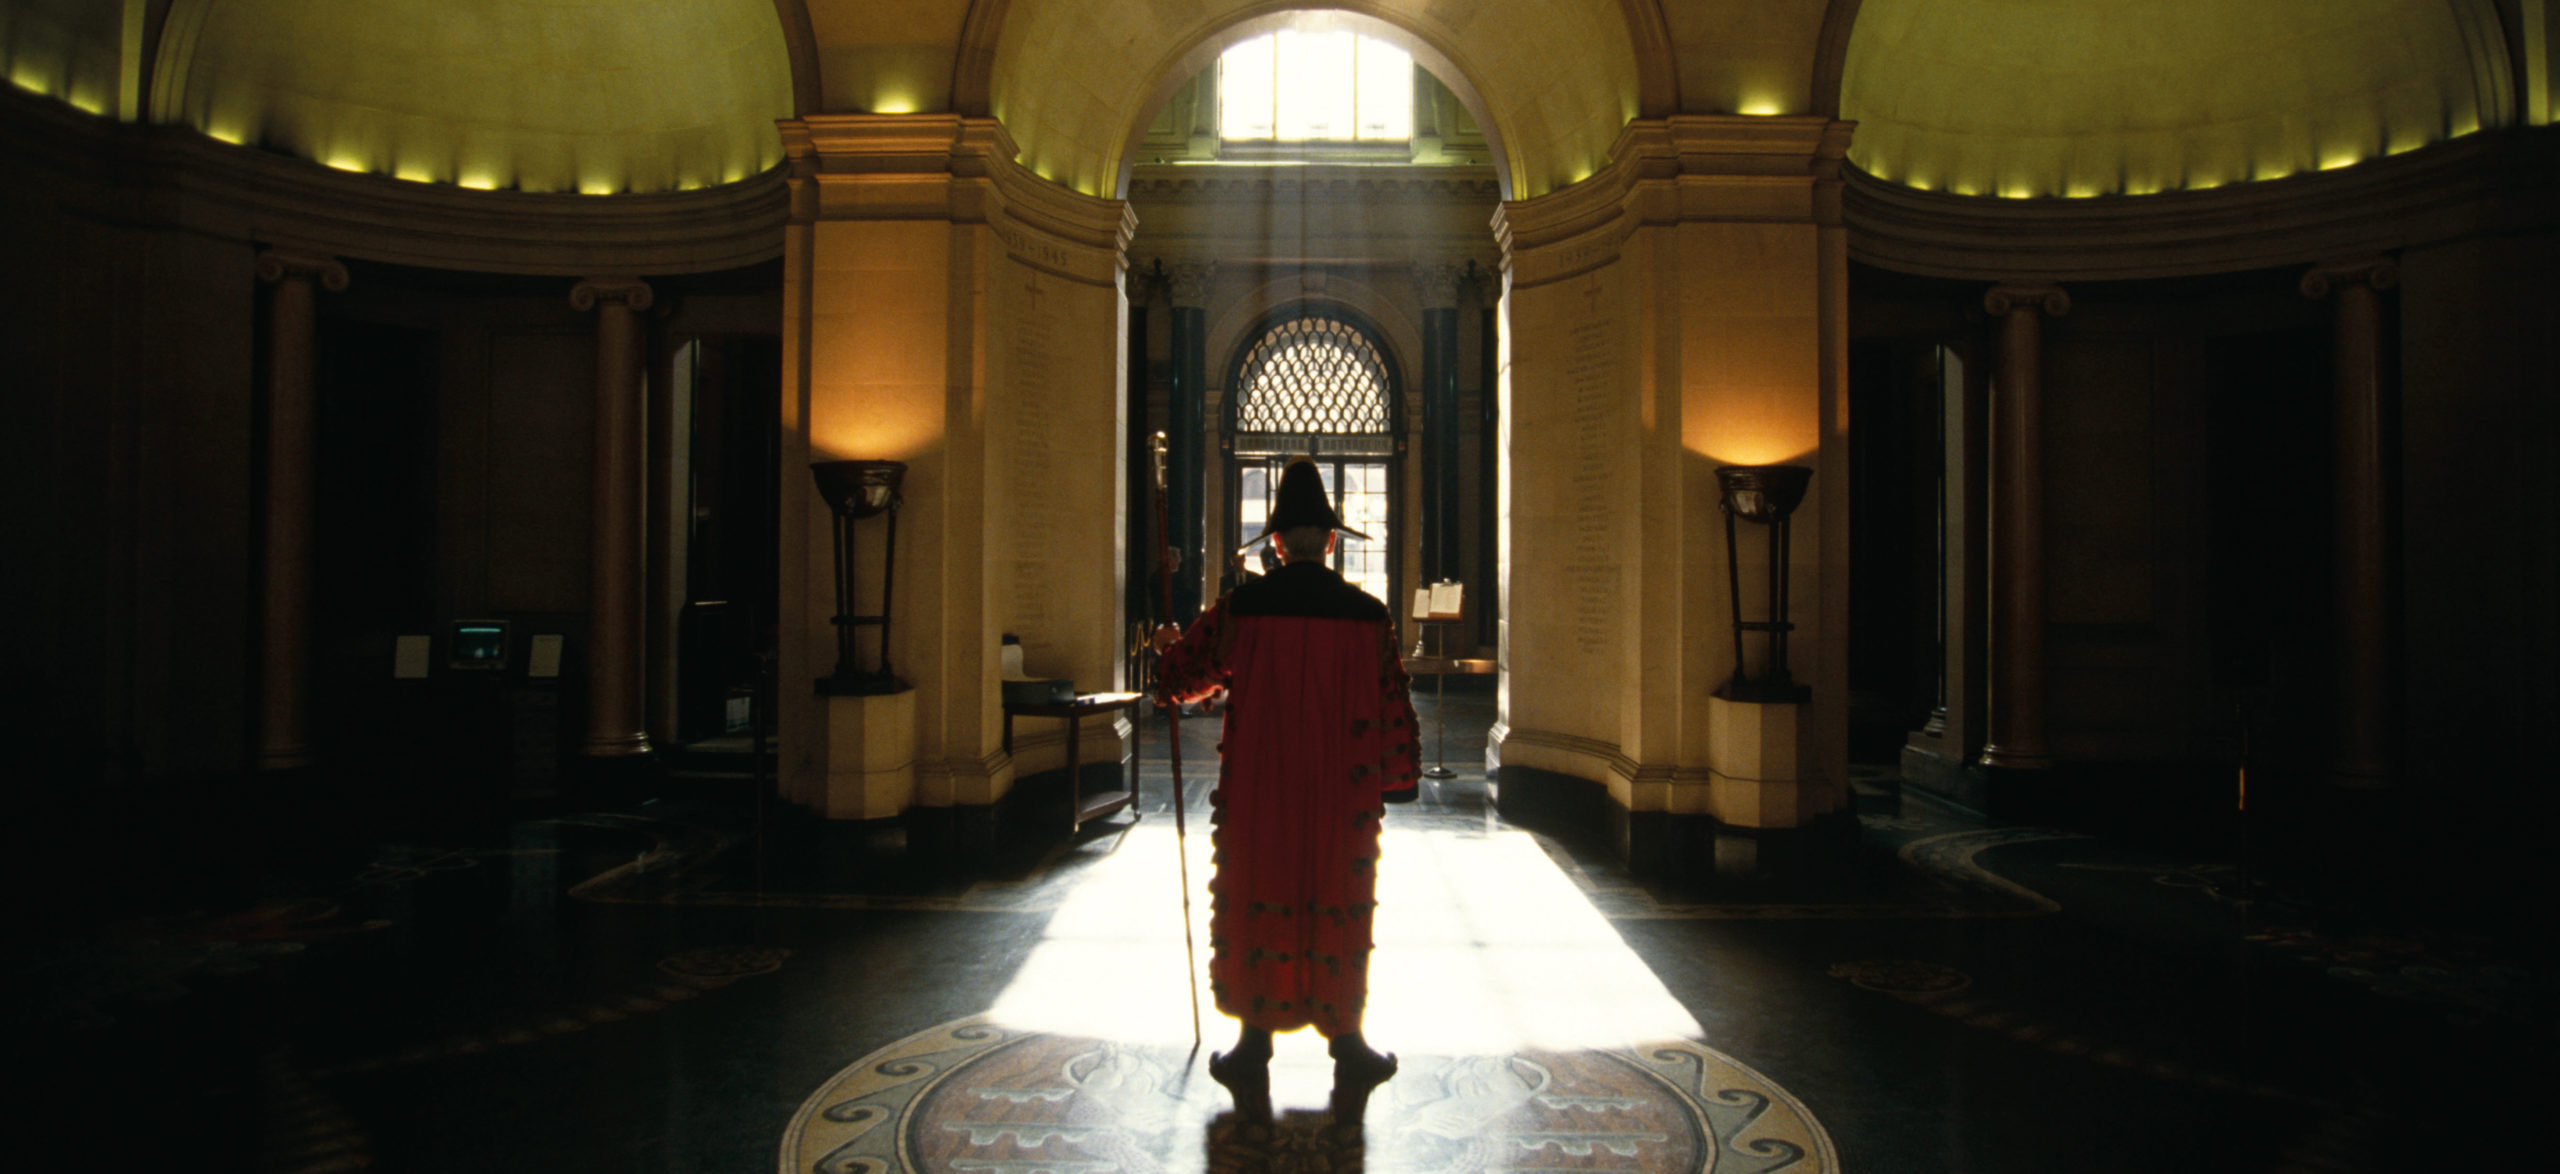 Head Gatekeeper inside the main entrance hall of the Bank of England in Threadneedle Street in the City of London